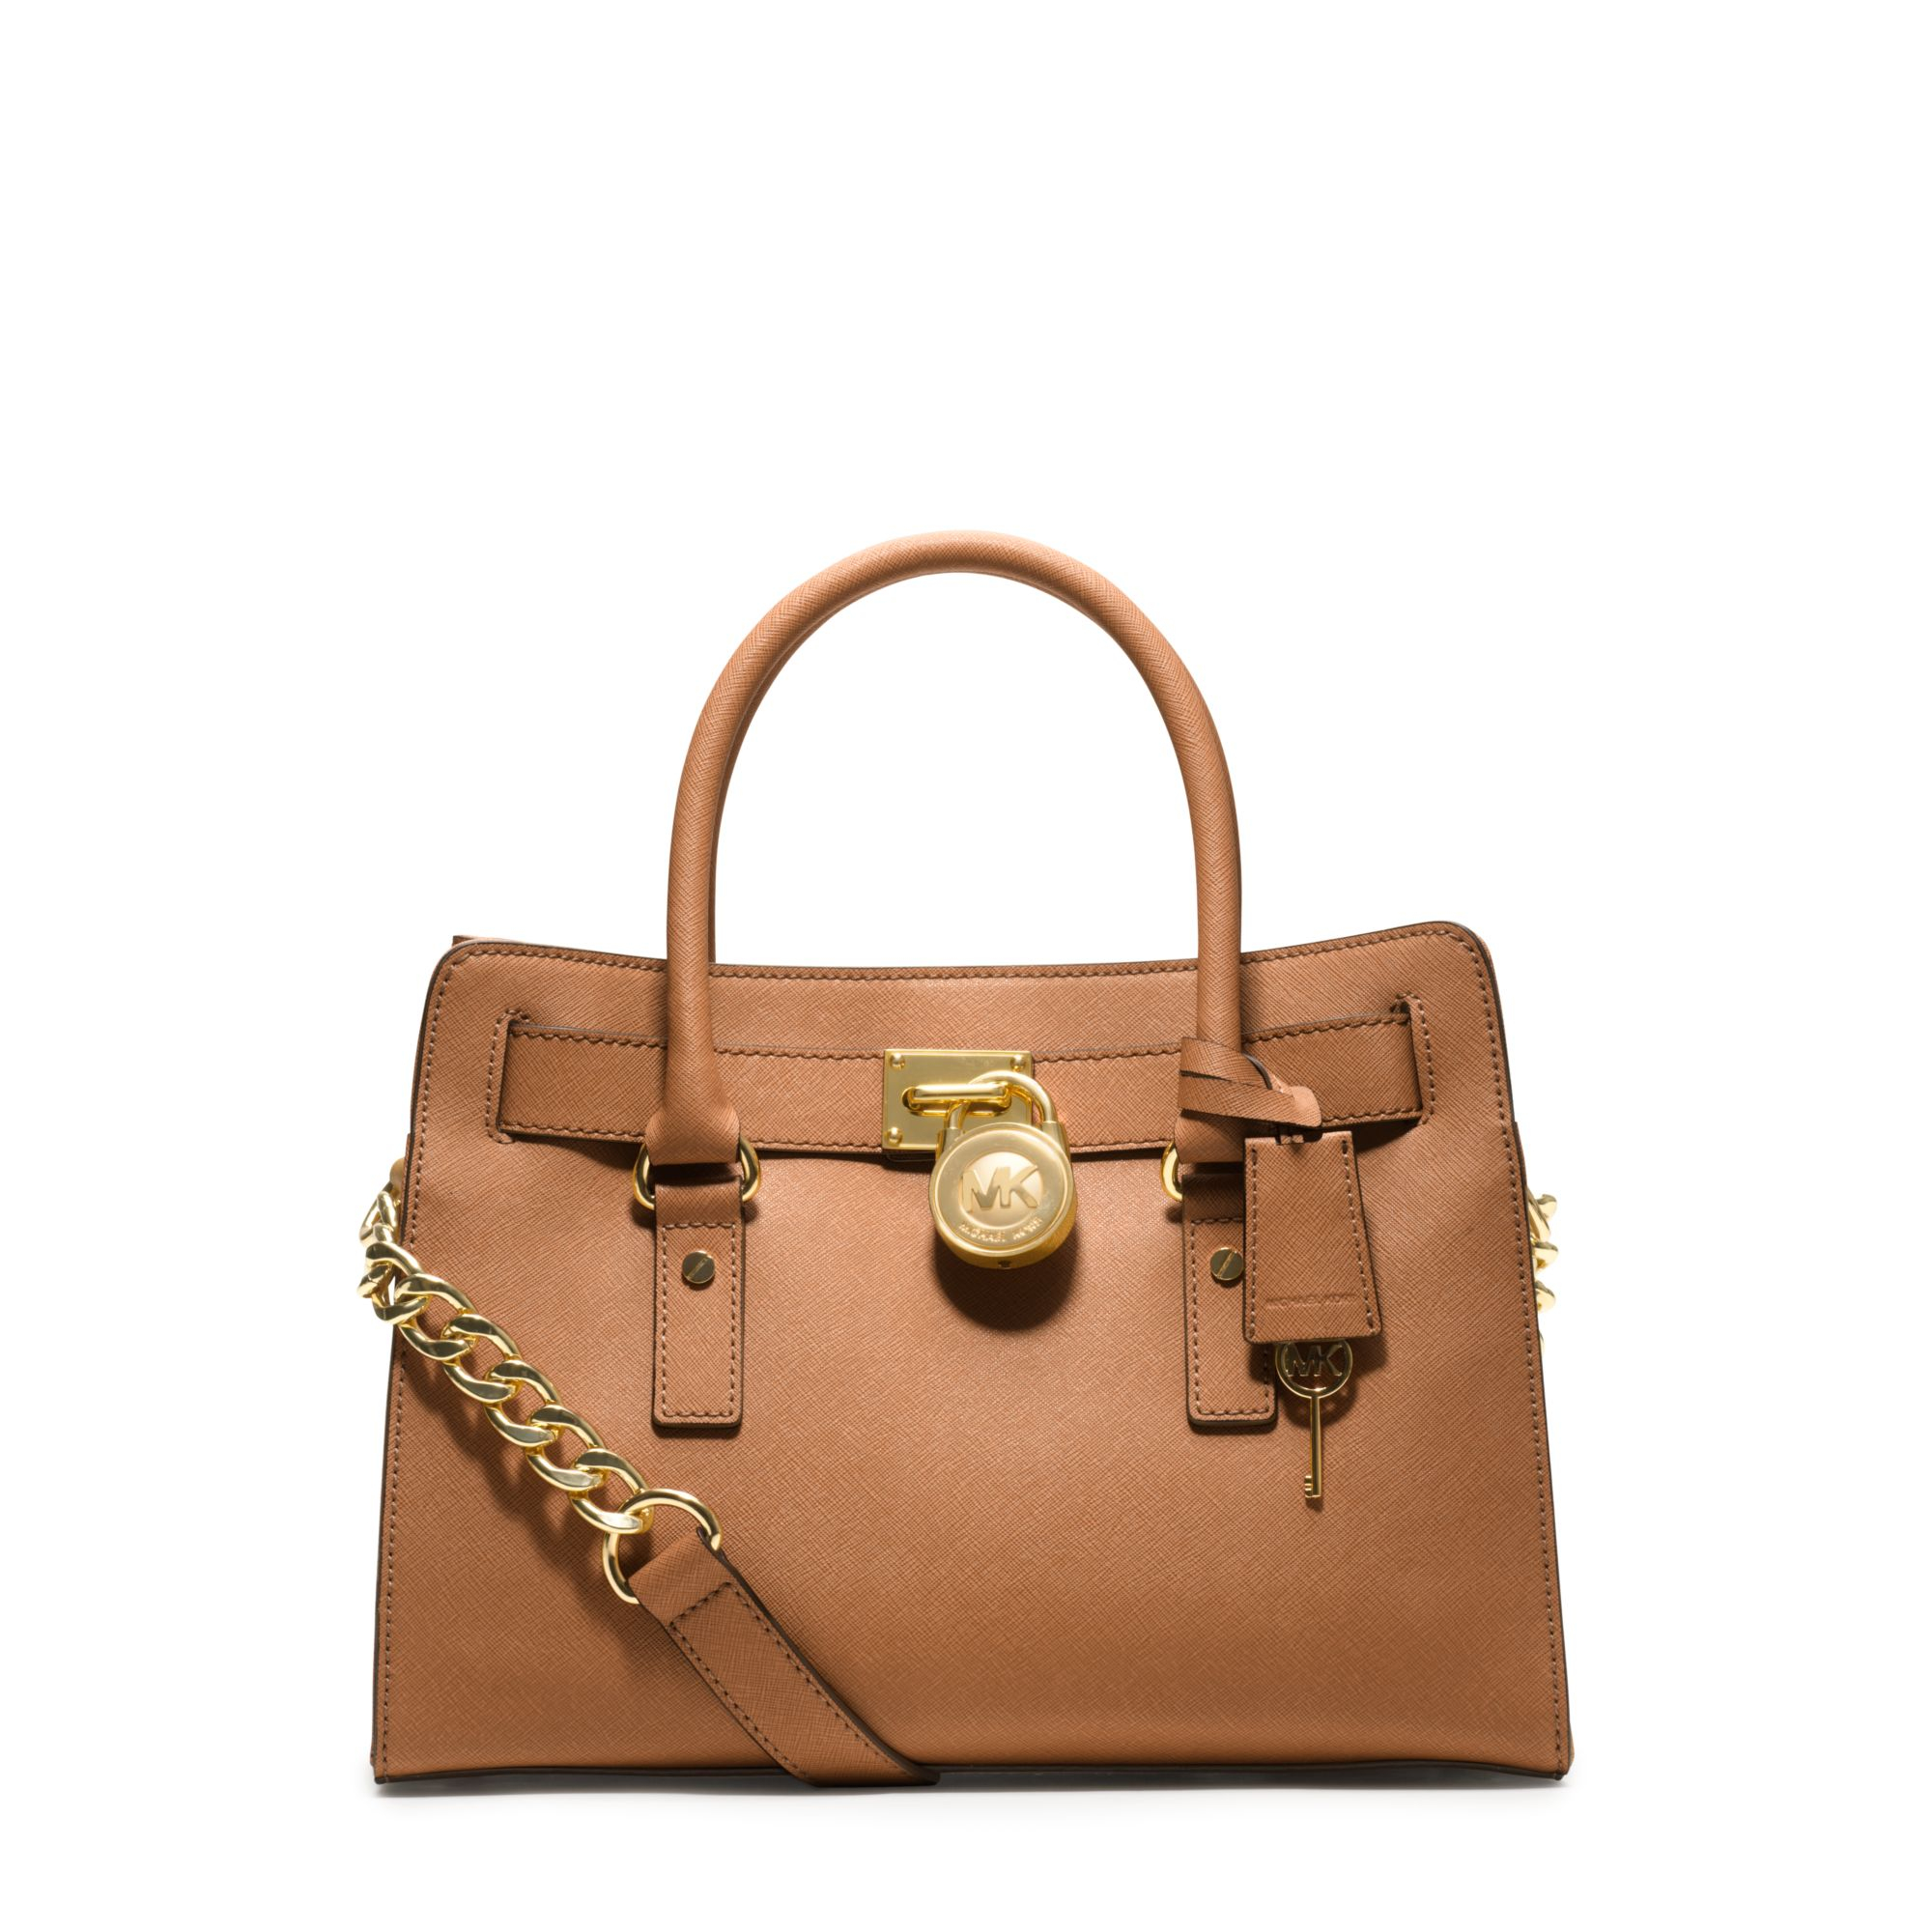 Michael Kors Hamilton Laukku : Michael kors hamilton saffiano leather medium satchel in